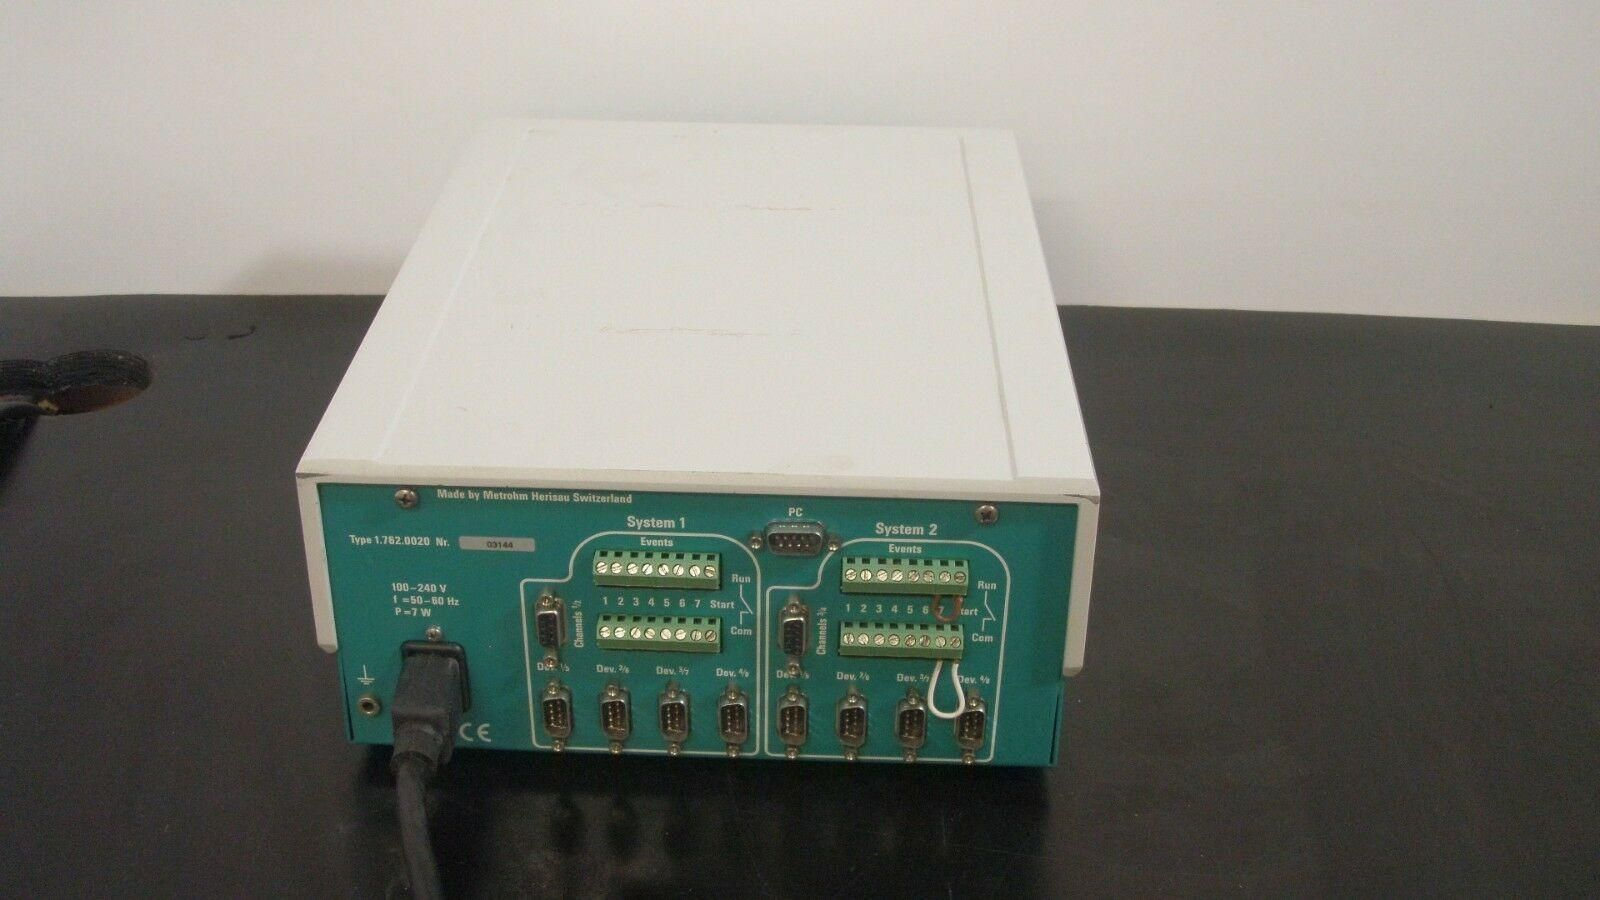 Metrohm 762 IC Interface